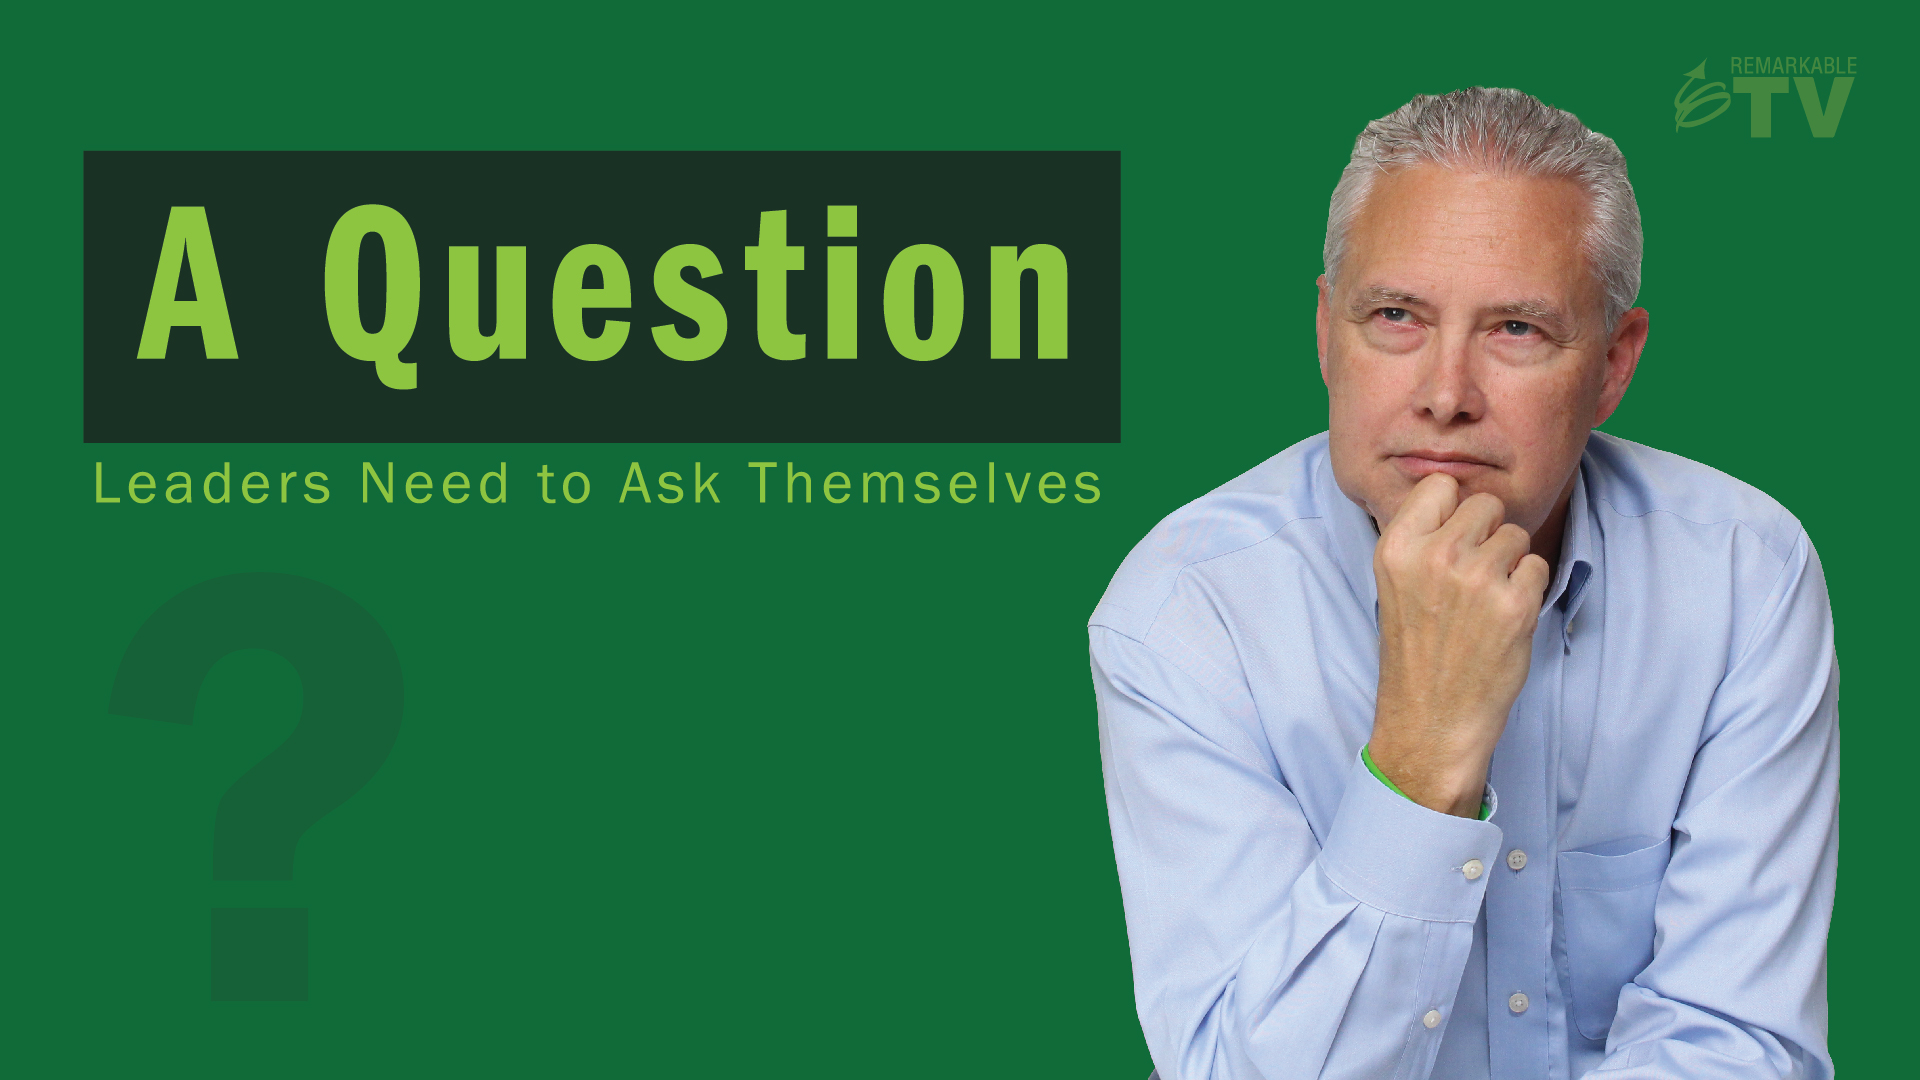 A Question Leaders Need to Ask Themselves - Remarkable TV